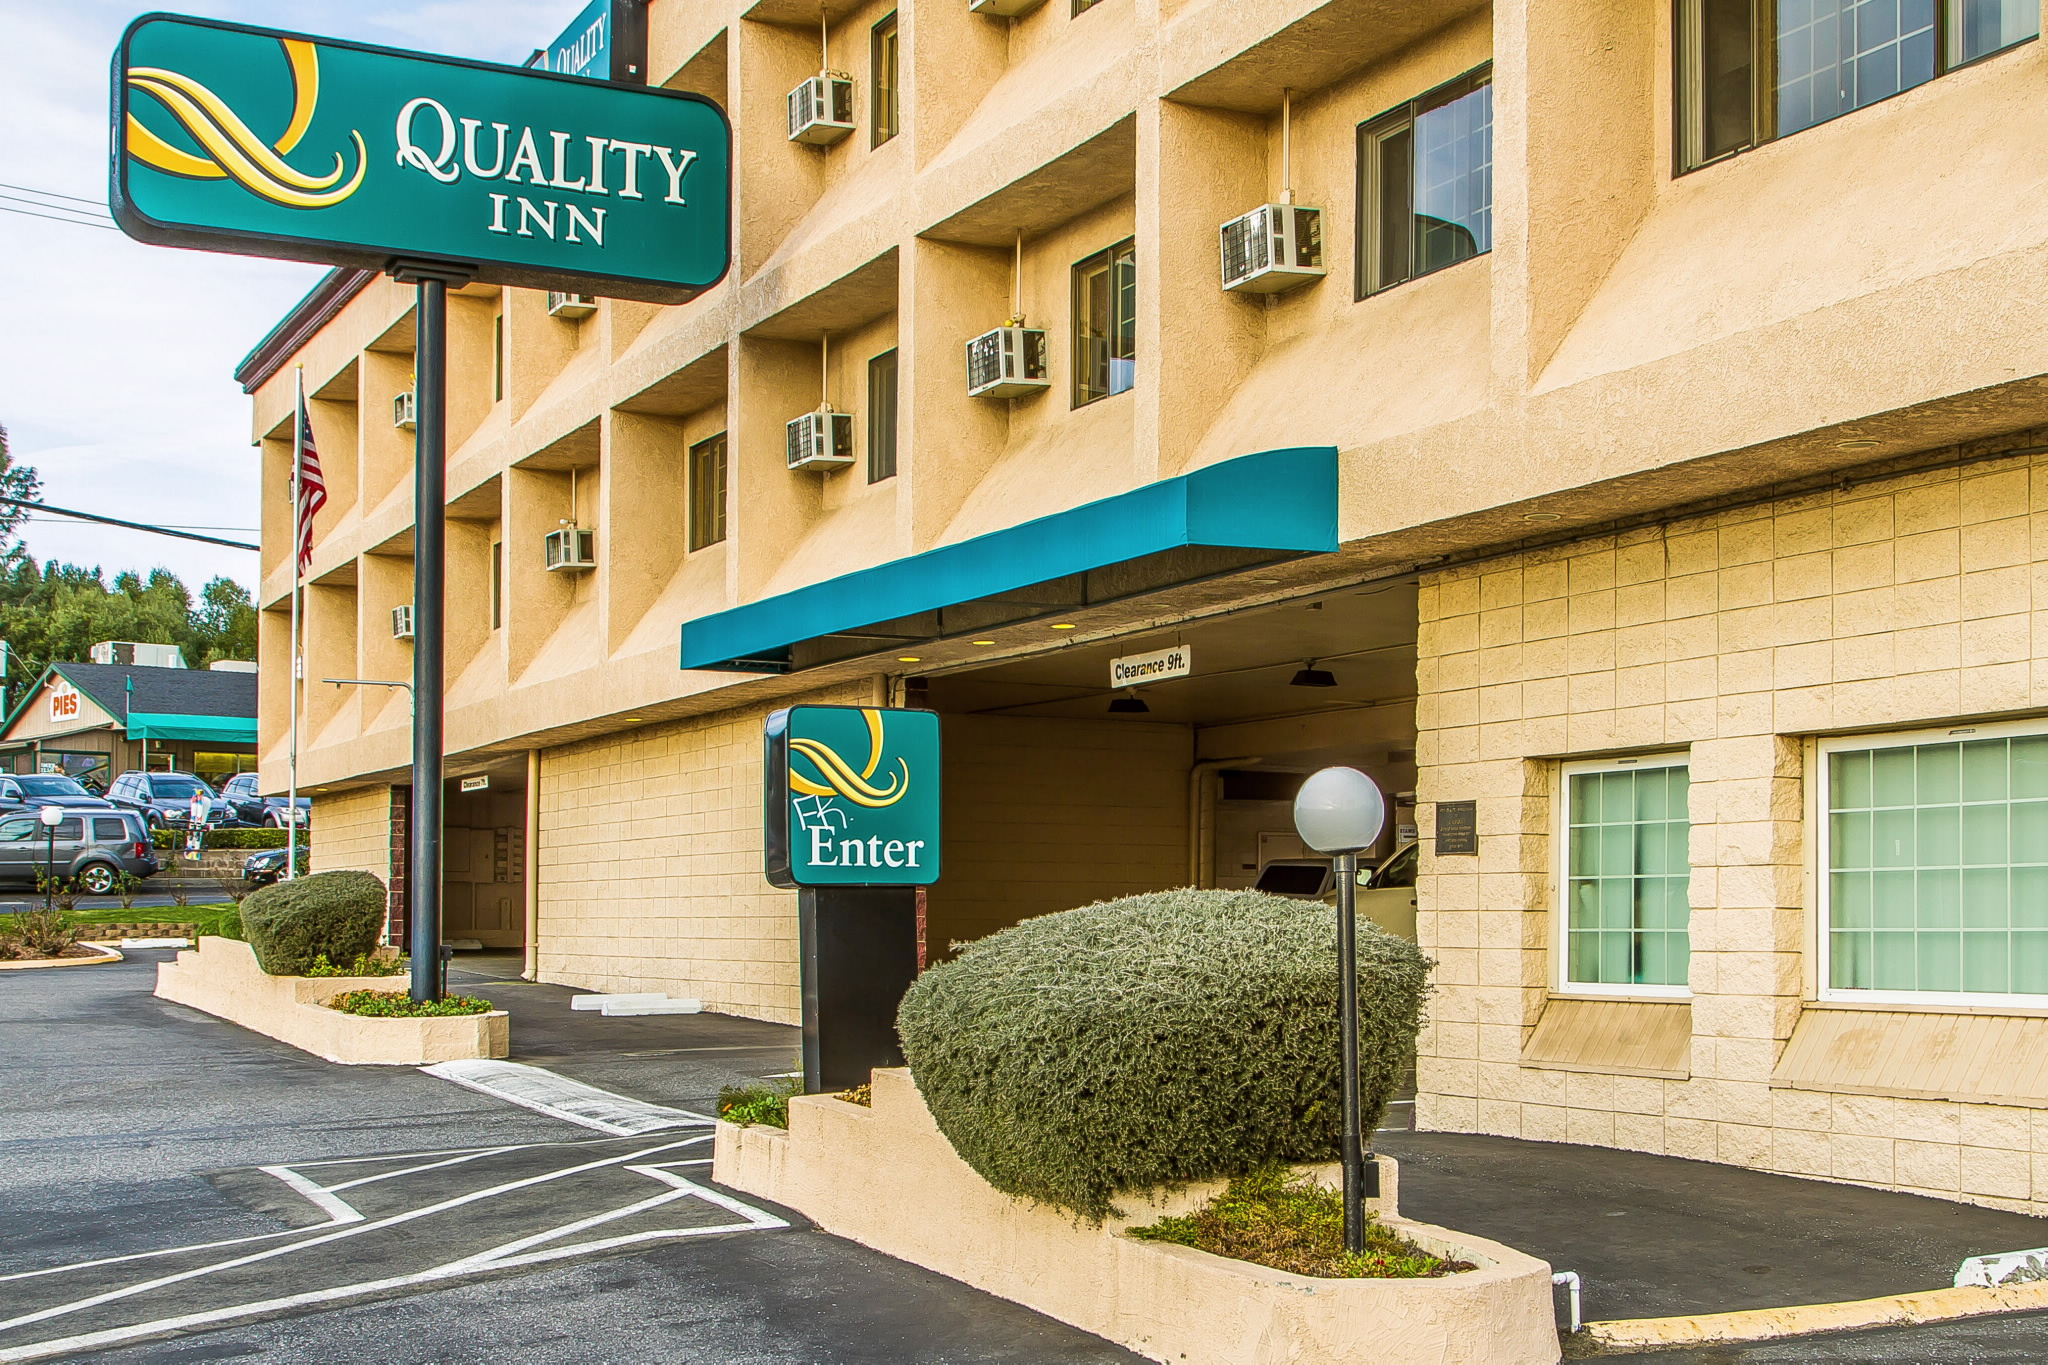 The Quality Inn Auburn - Foresthill hotel in Auburn, CA is located near Lake Clementine & the State Theater. Enjoy our free continental breakfast & WiFi!Phone: ()